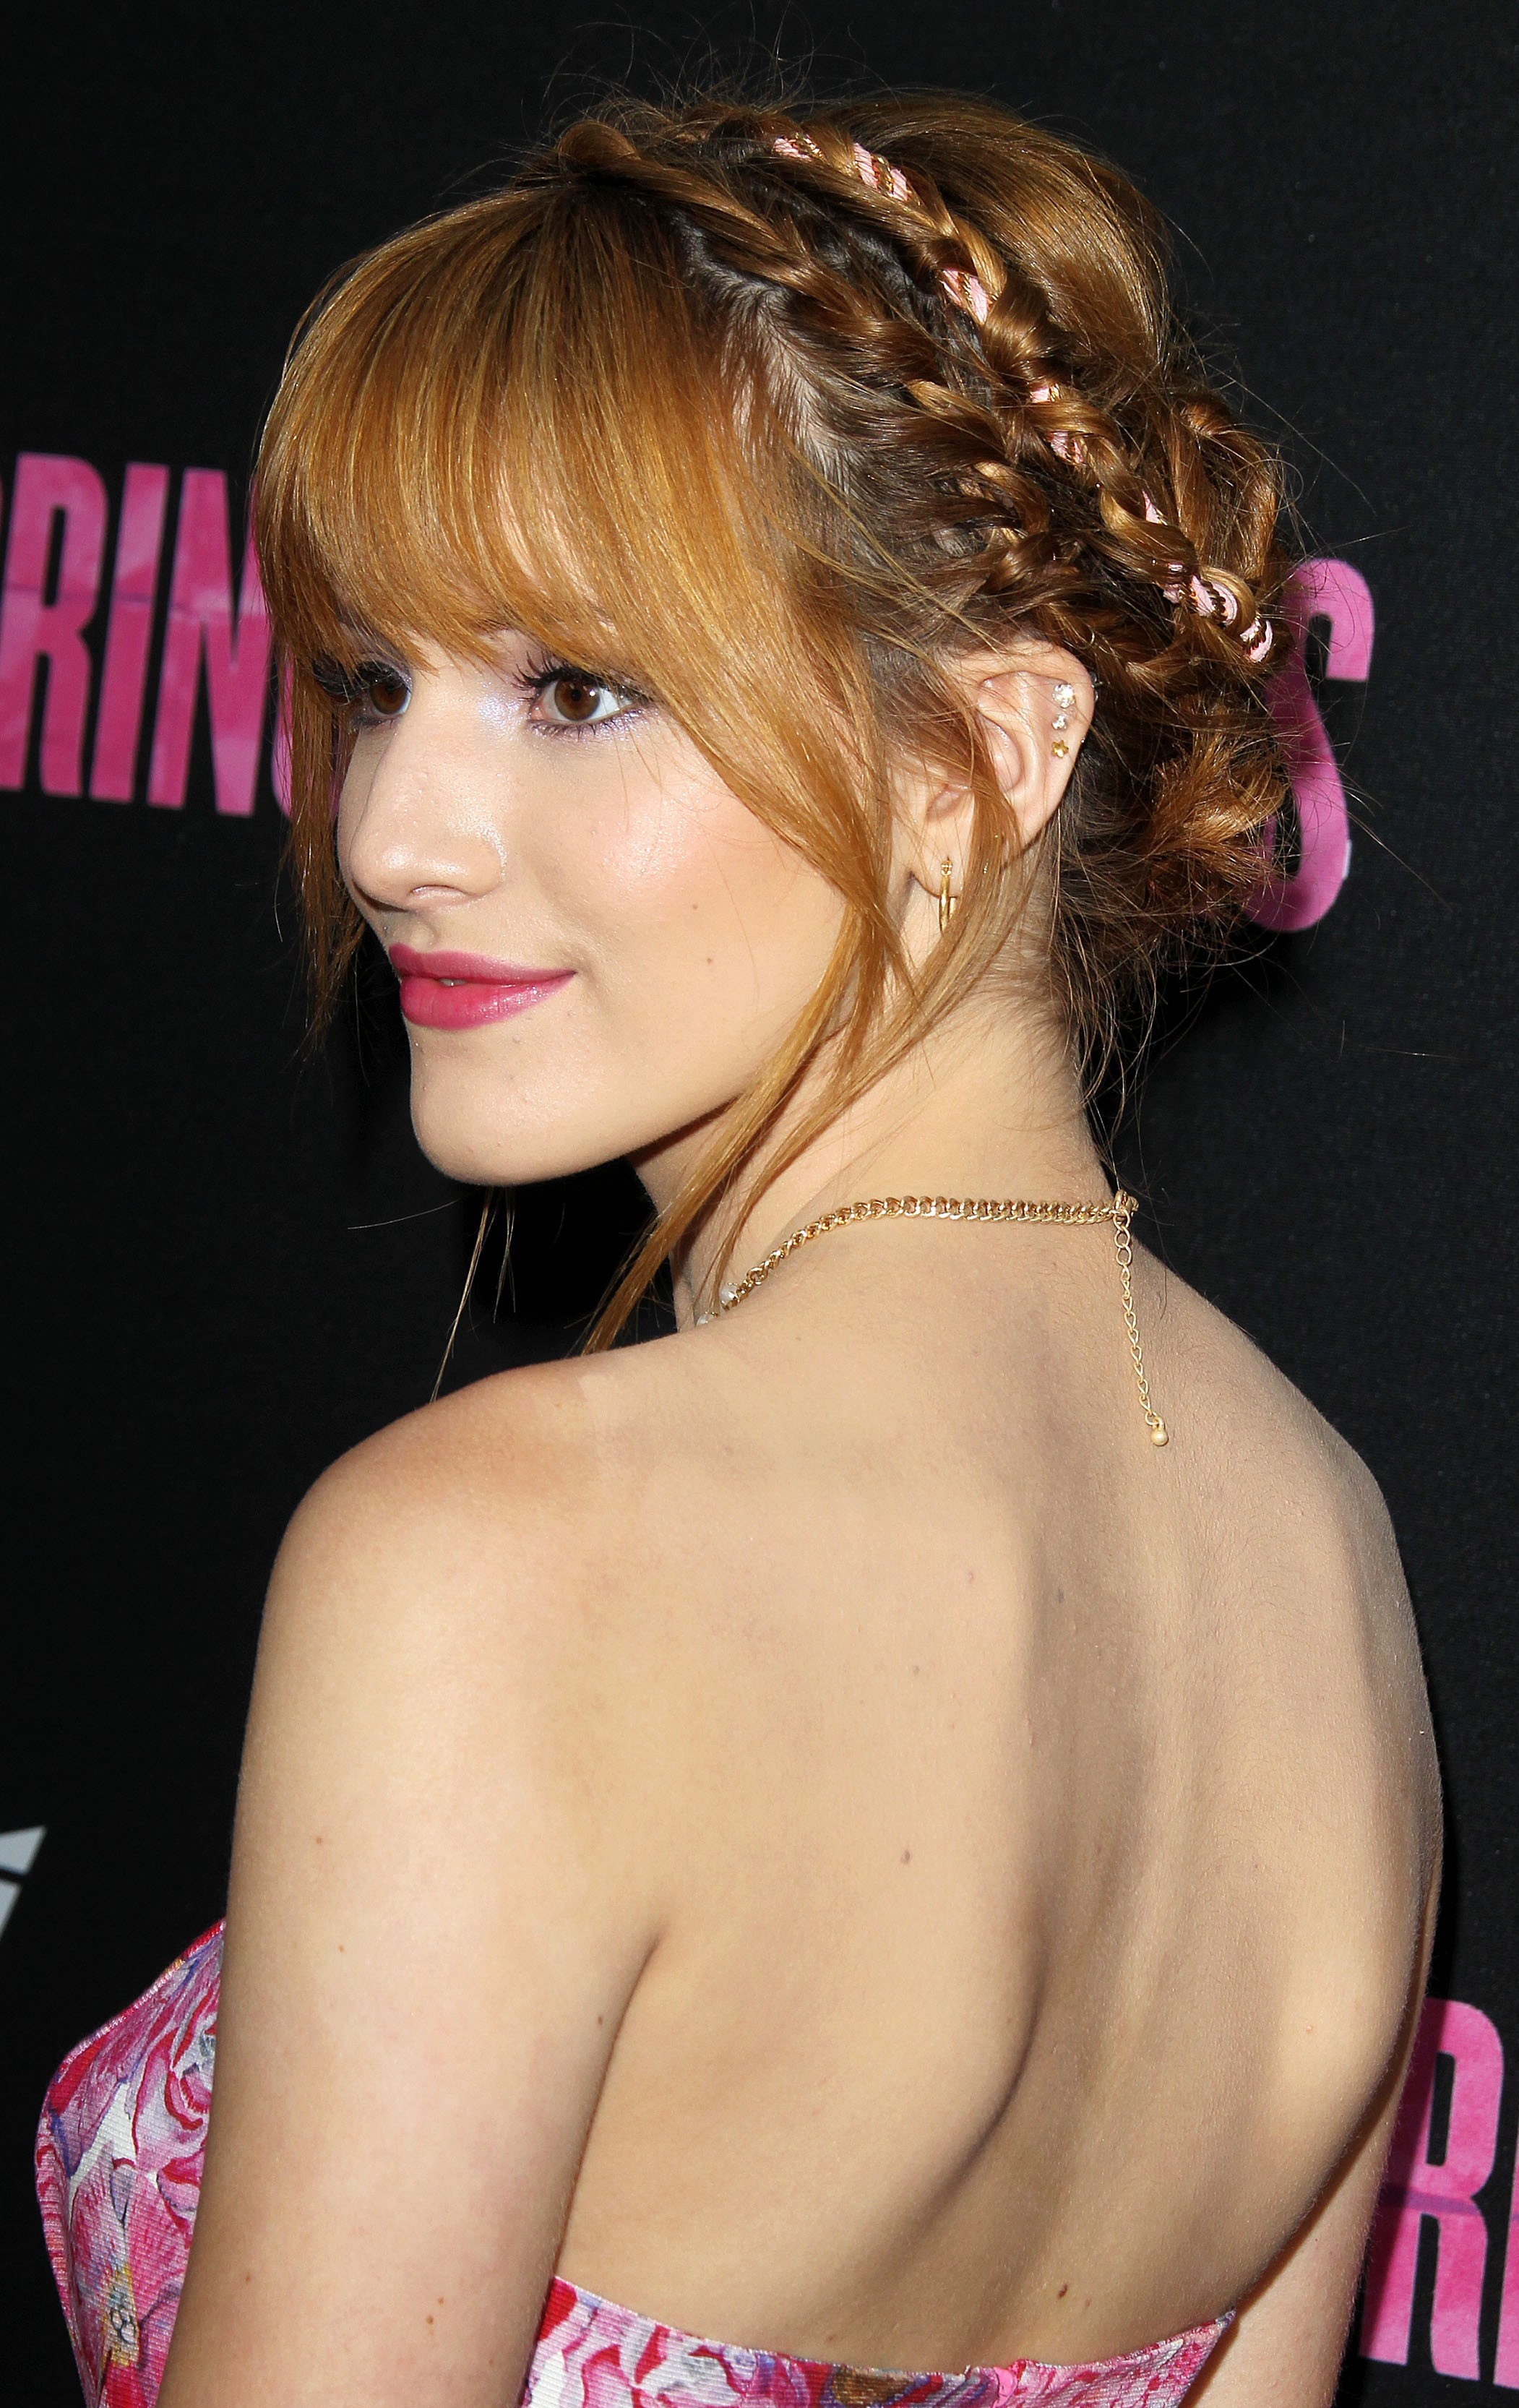 39 All Time Best Bella Thorne Pictures - Images of Bella ...